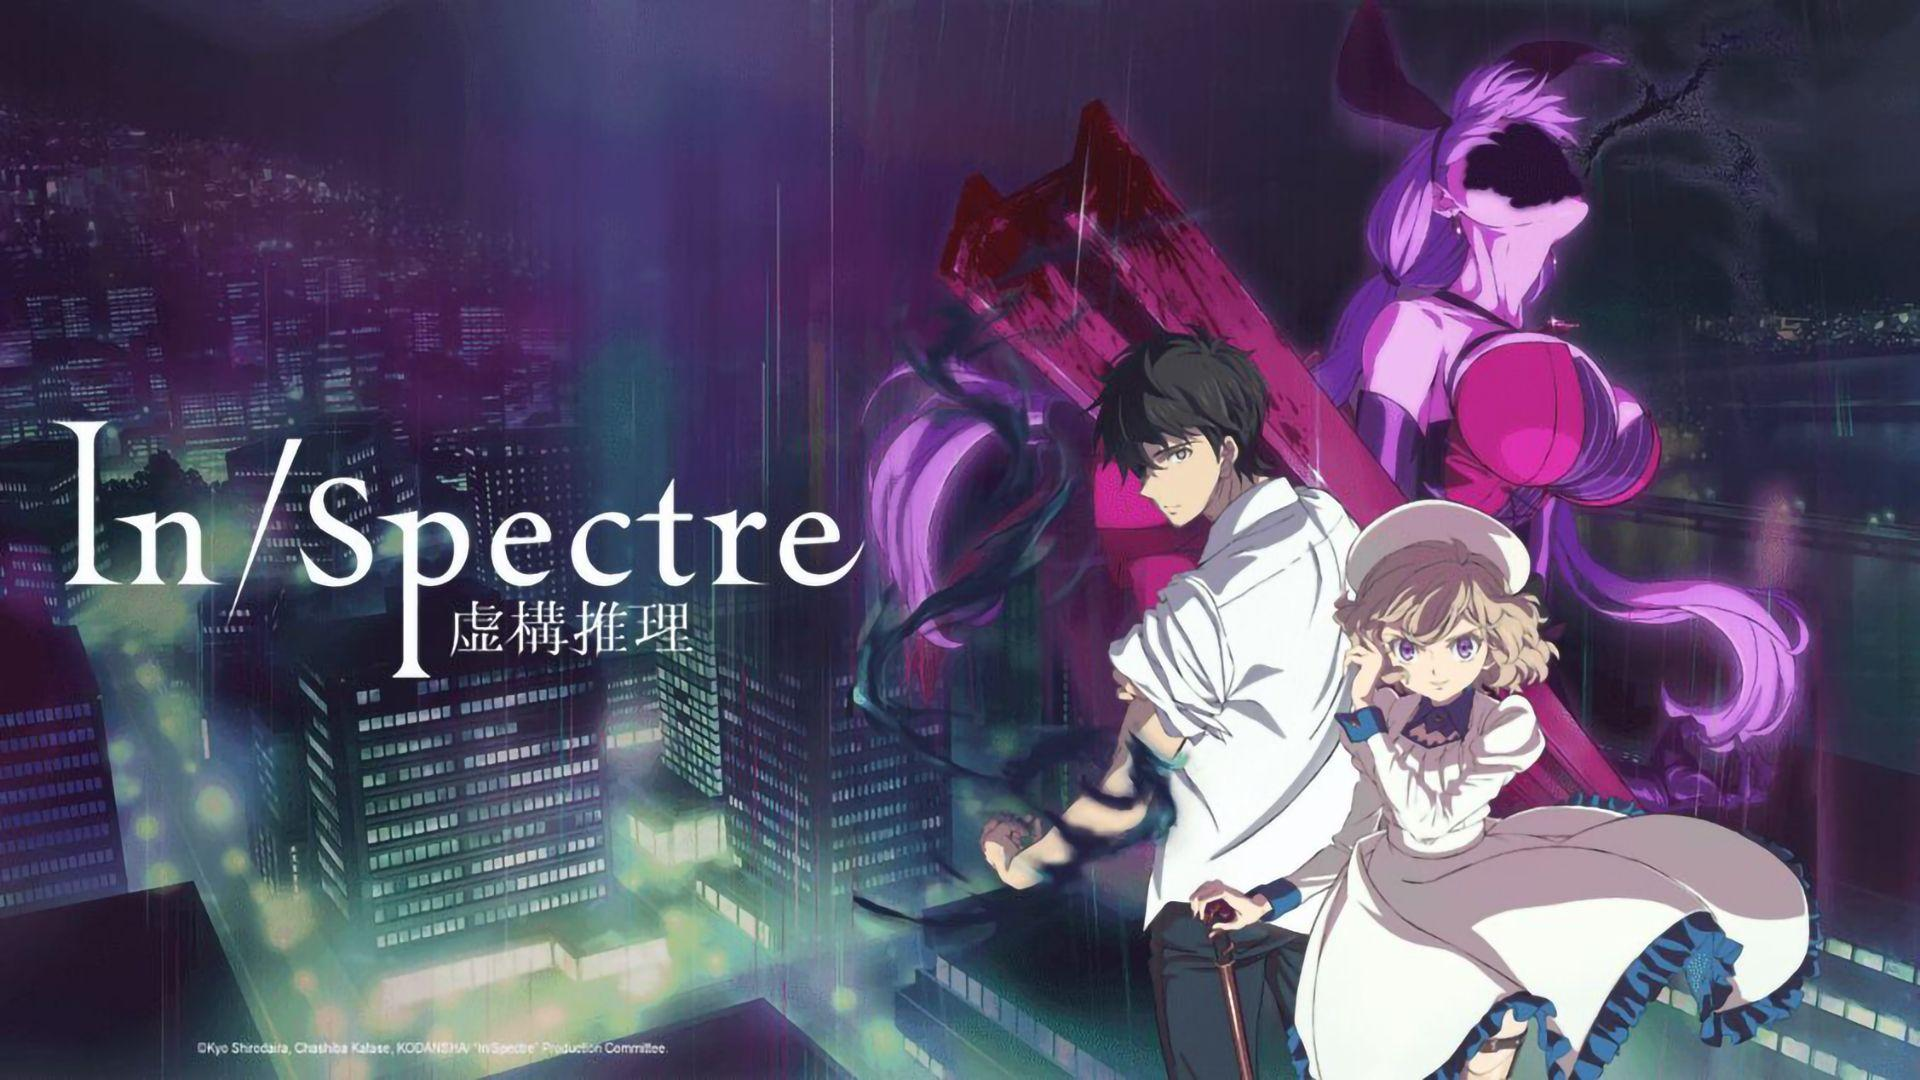 Mysterious anime similar to The Detective Is Already Dead, In/Spectre